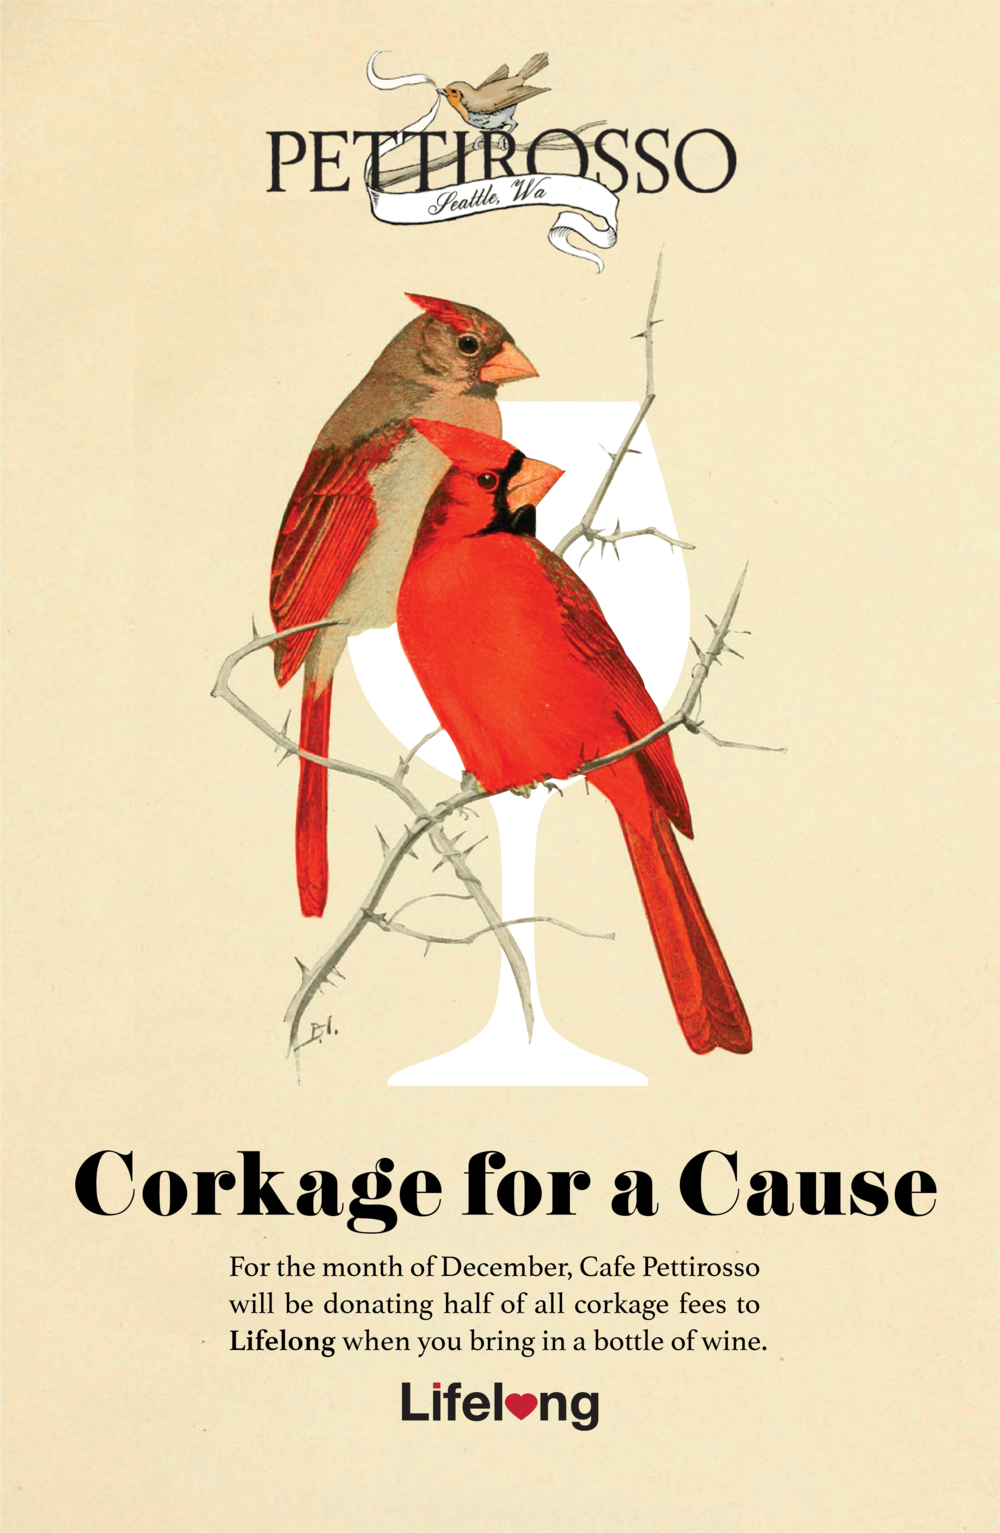 Promotional poster & web graphic commissioned for  Cafe Pettirosso 's wine promotion in collaboration with the non-profit organization Lifelong. Bird illustration sourced from The British Library's online public collection for a vintage style design to match the restaurant's logo.